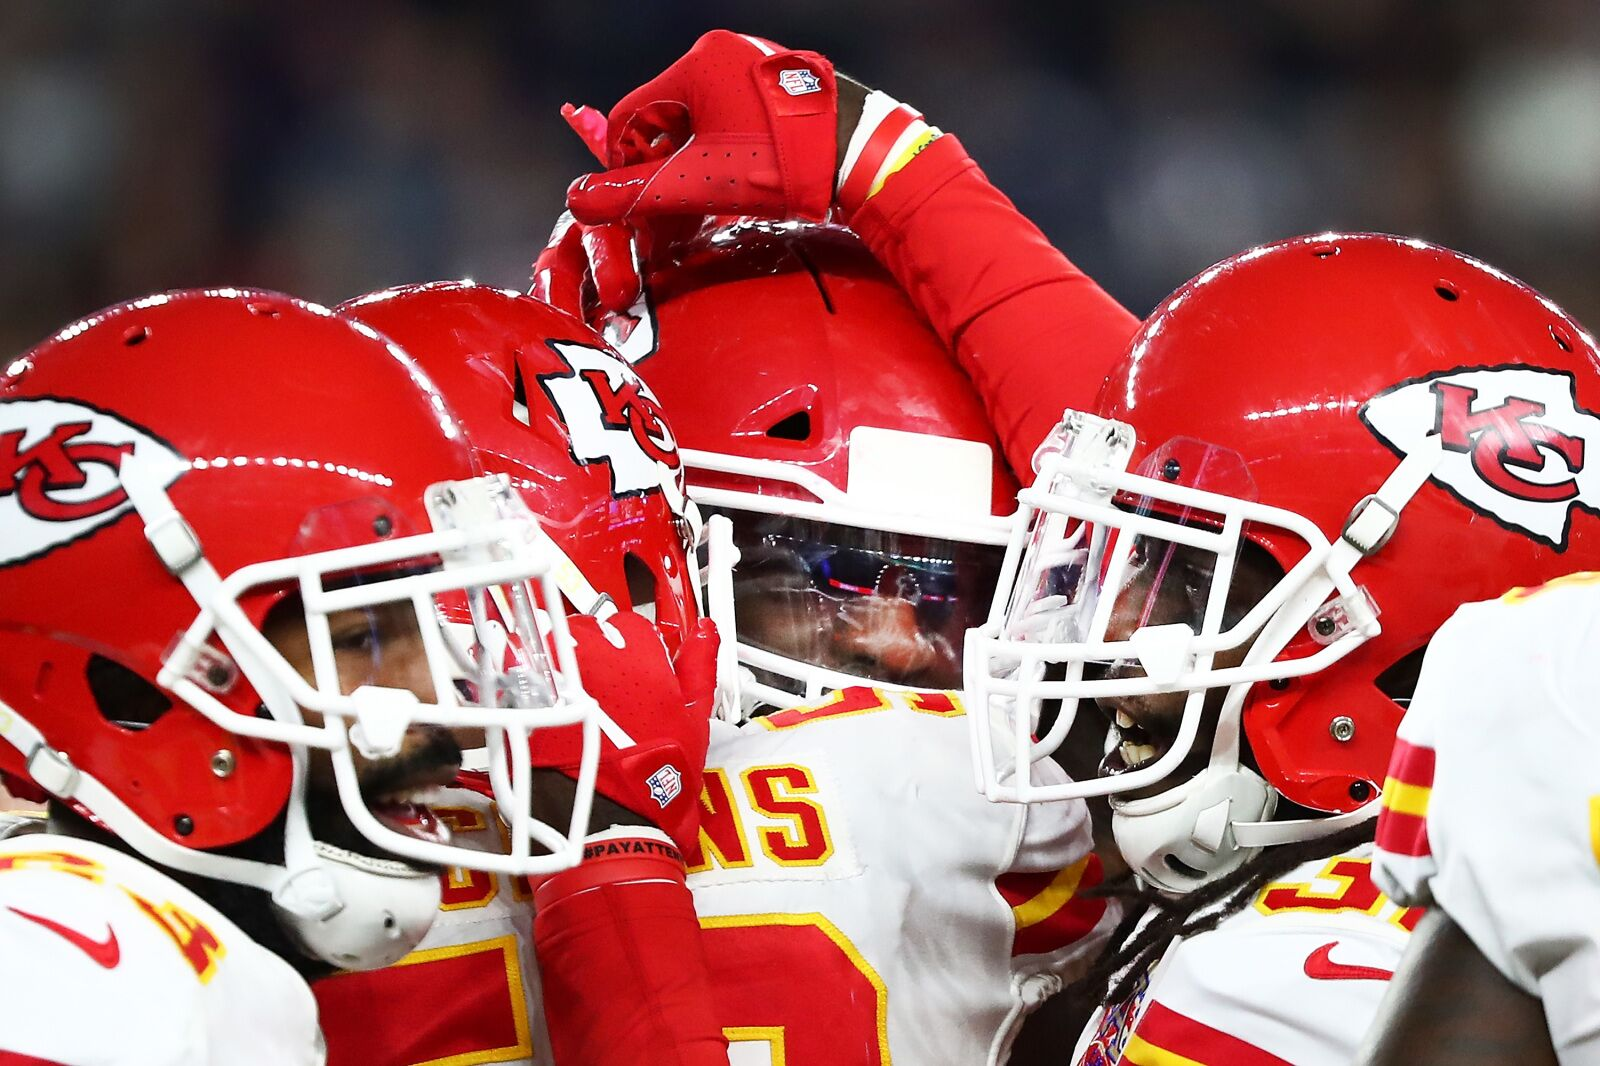 Kansas City Chiefs podcast: Behind enemy lines with Cincinnati Bengals